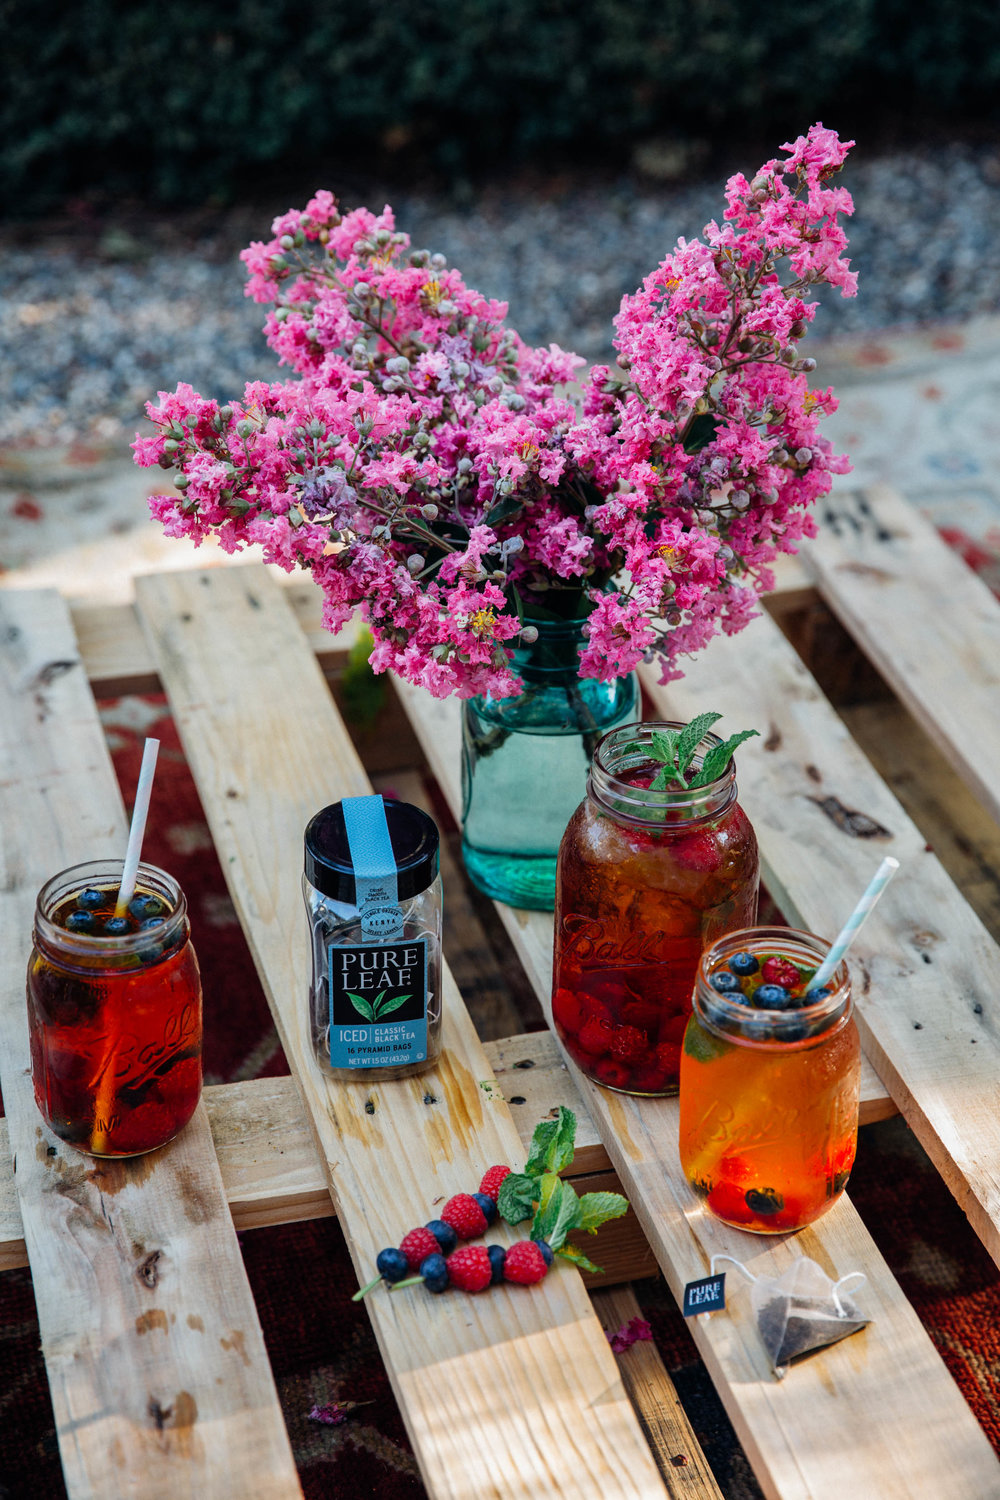 Pure Leaf Iced Classic Black Tea - by Madeline Lu - @lumadeline